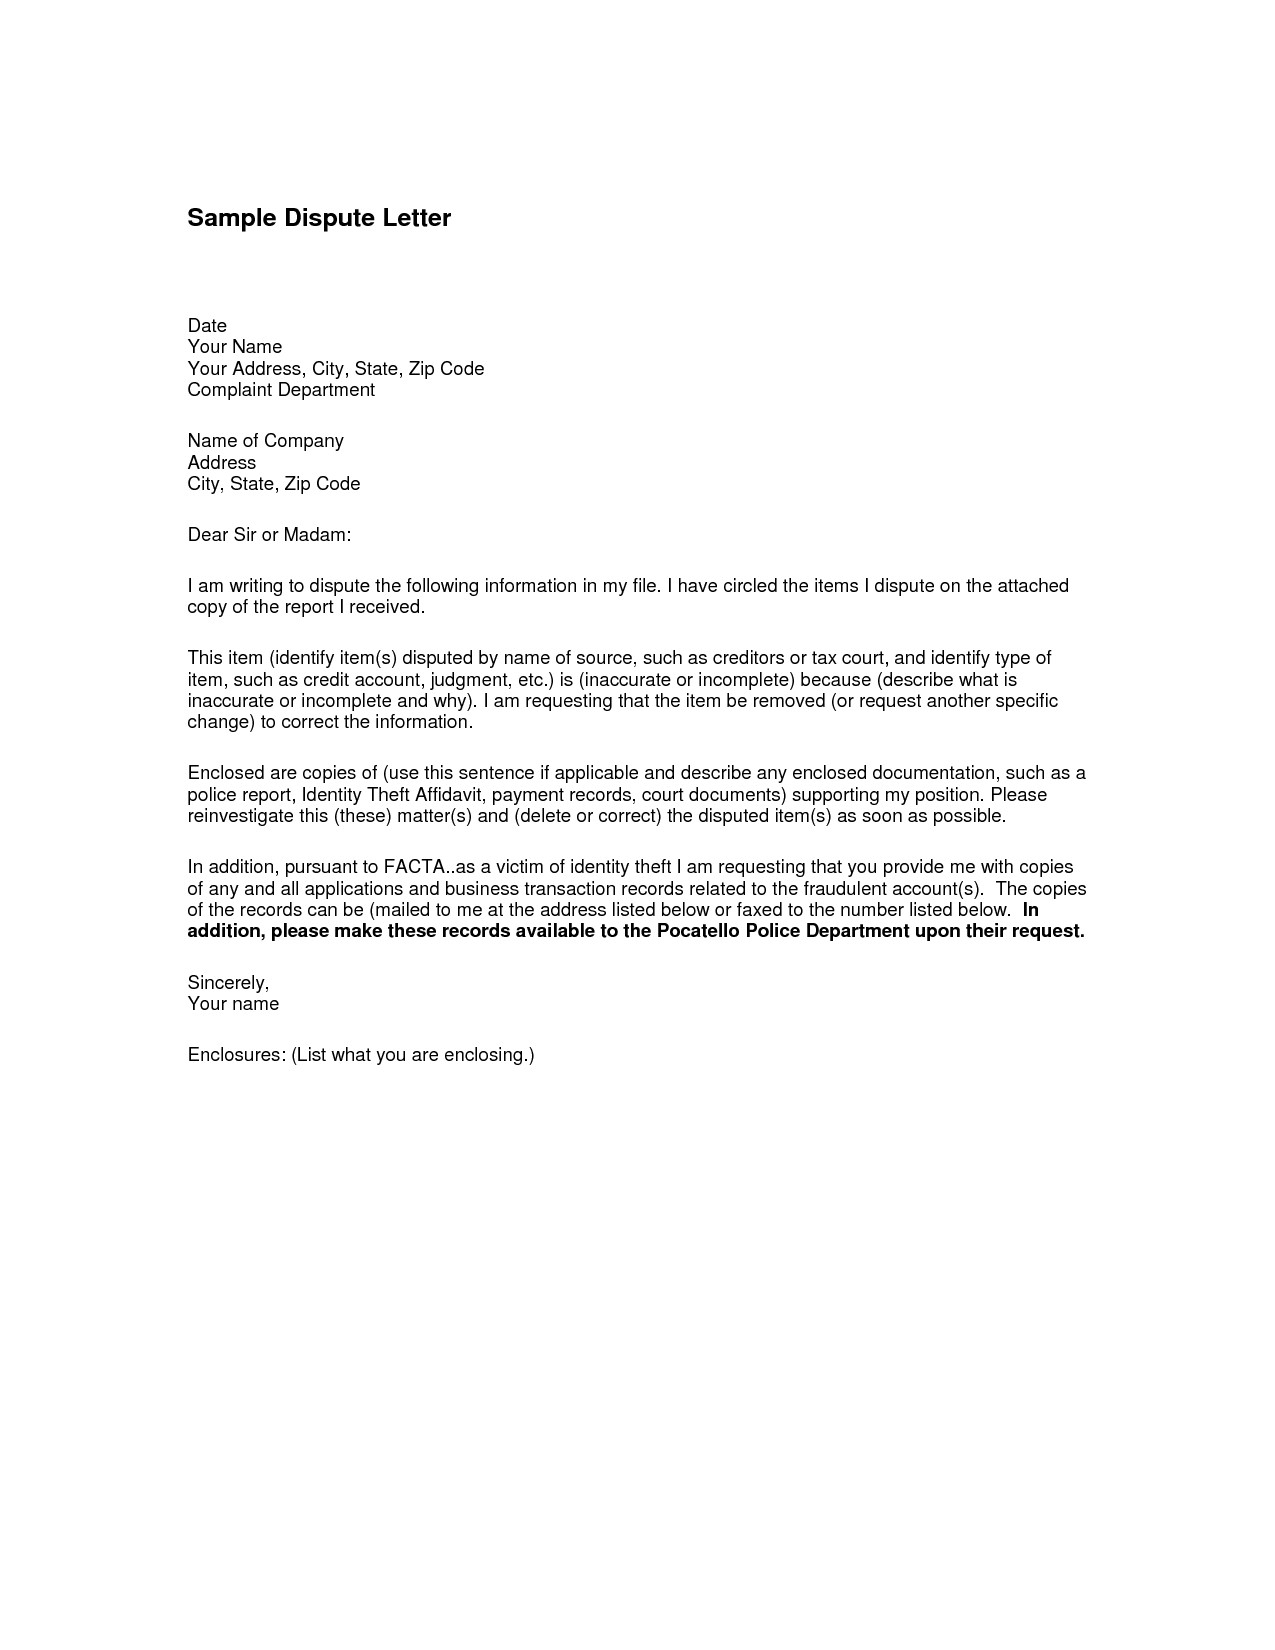 Late Payment Dispute Letter Template - Invoice Dispute Letter Template Unique 19 Best Letter Template